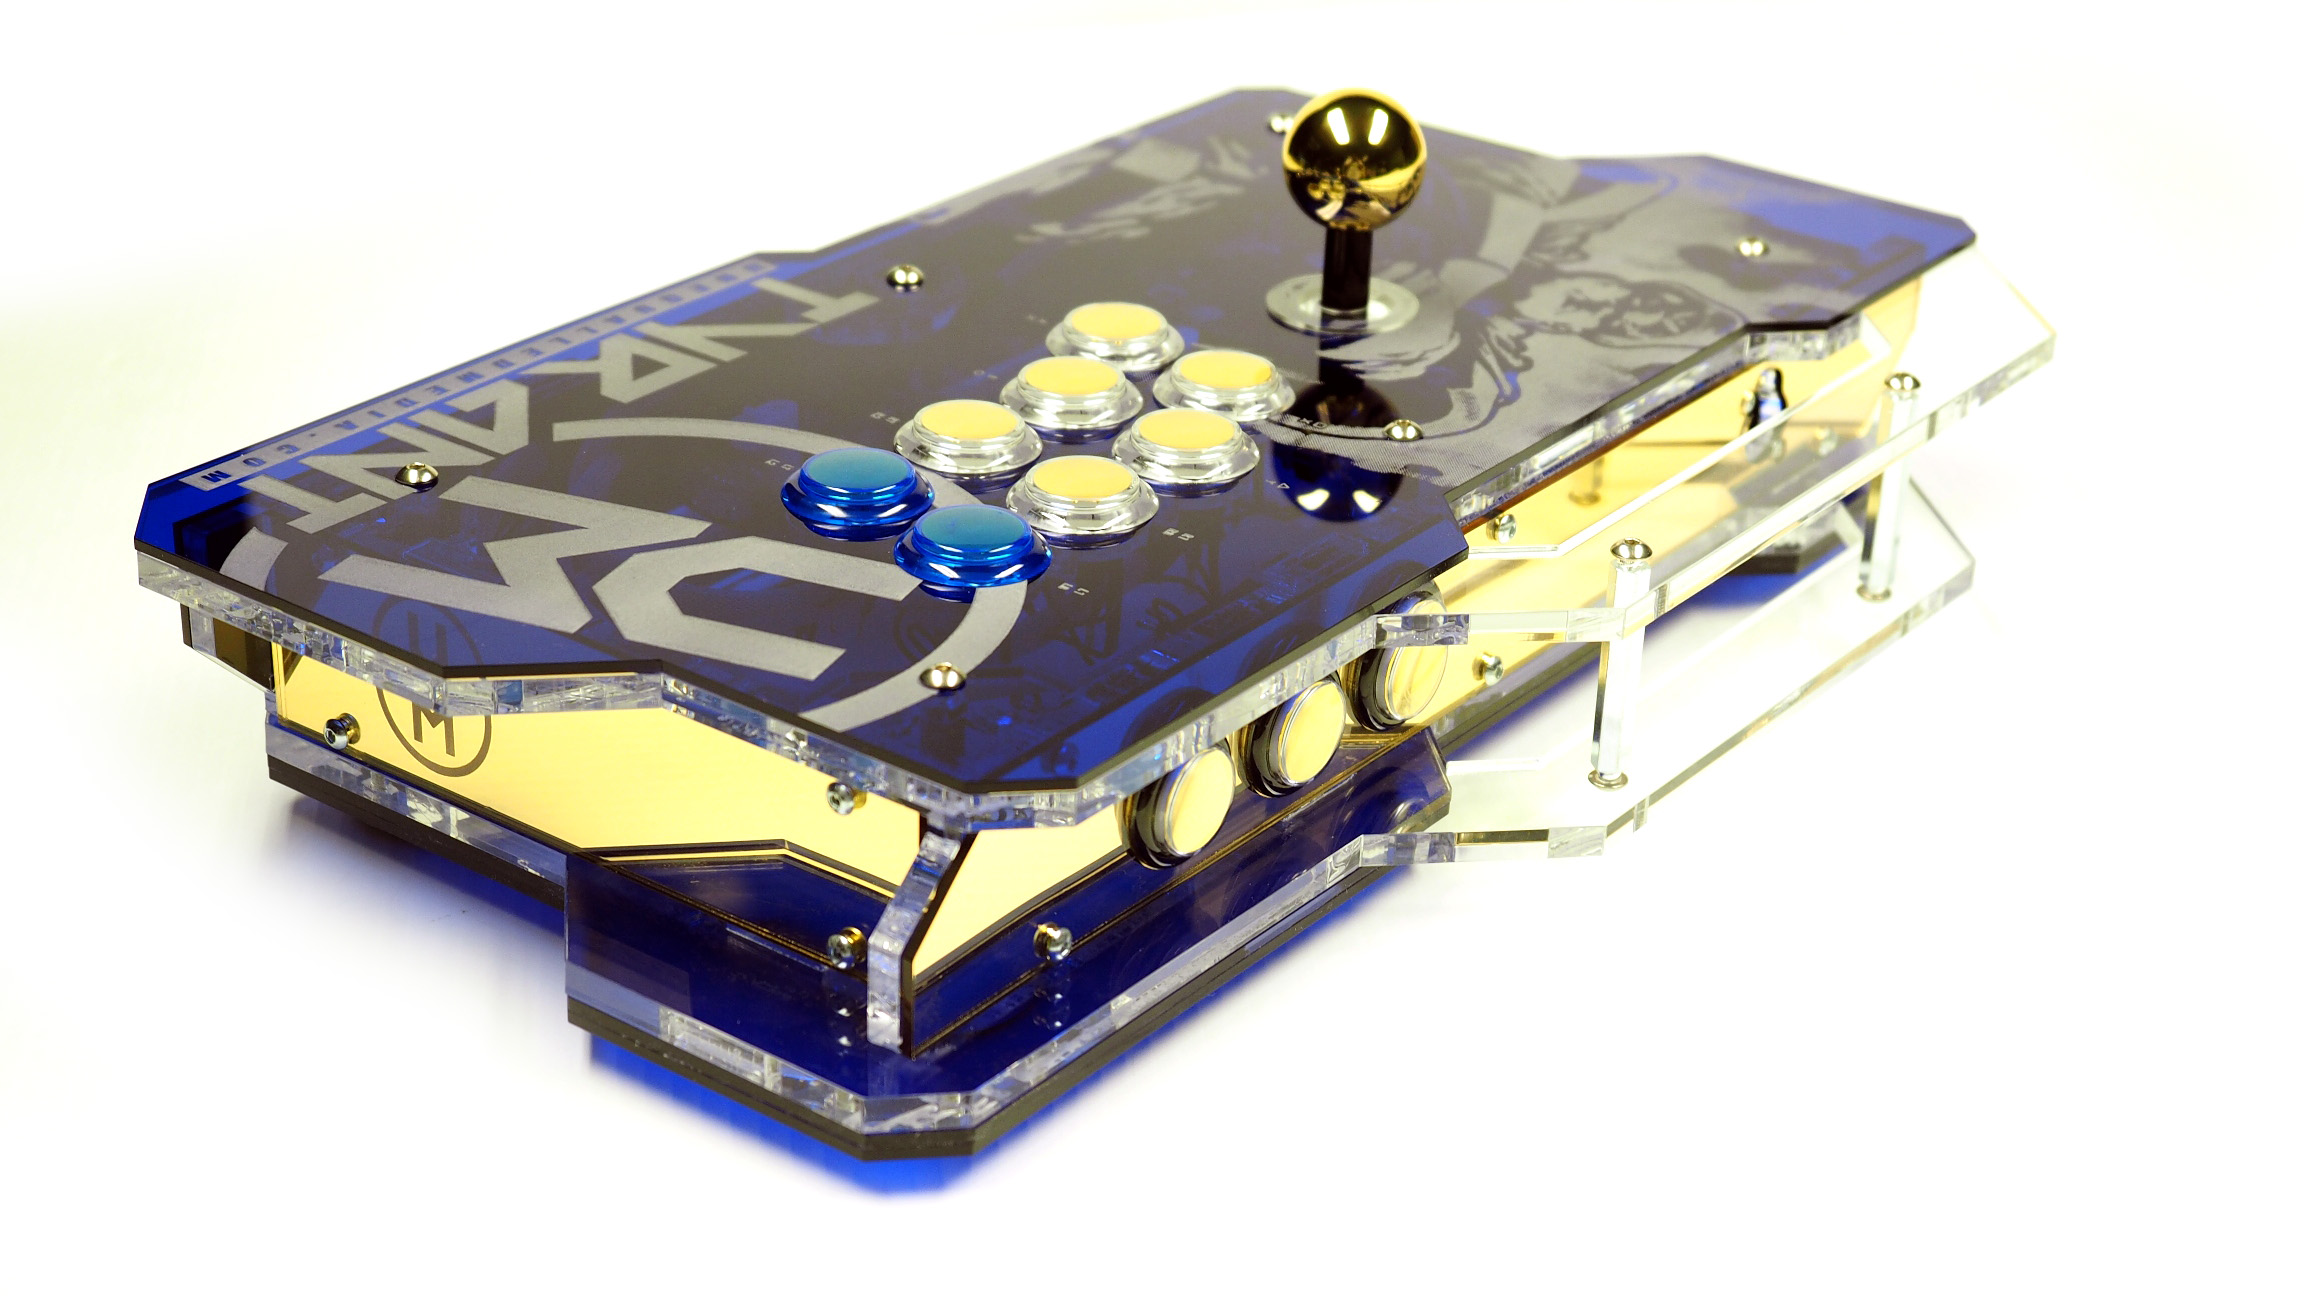 M.Bison UM X1 Custom Arcade Stick Resized 3.JPG